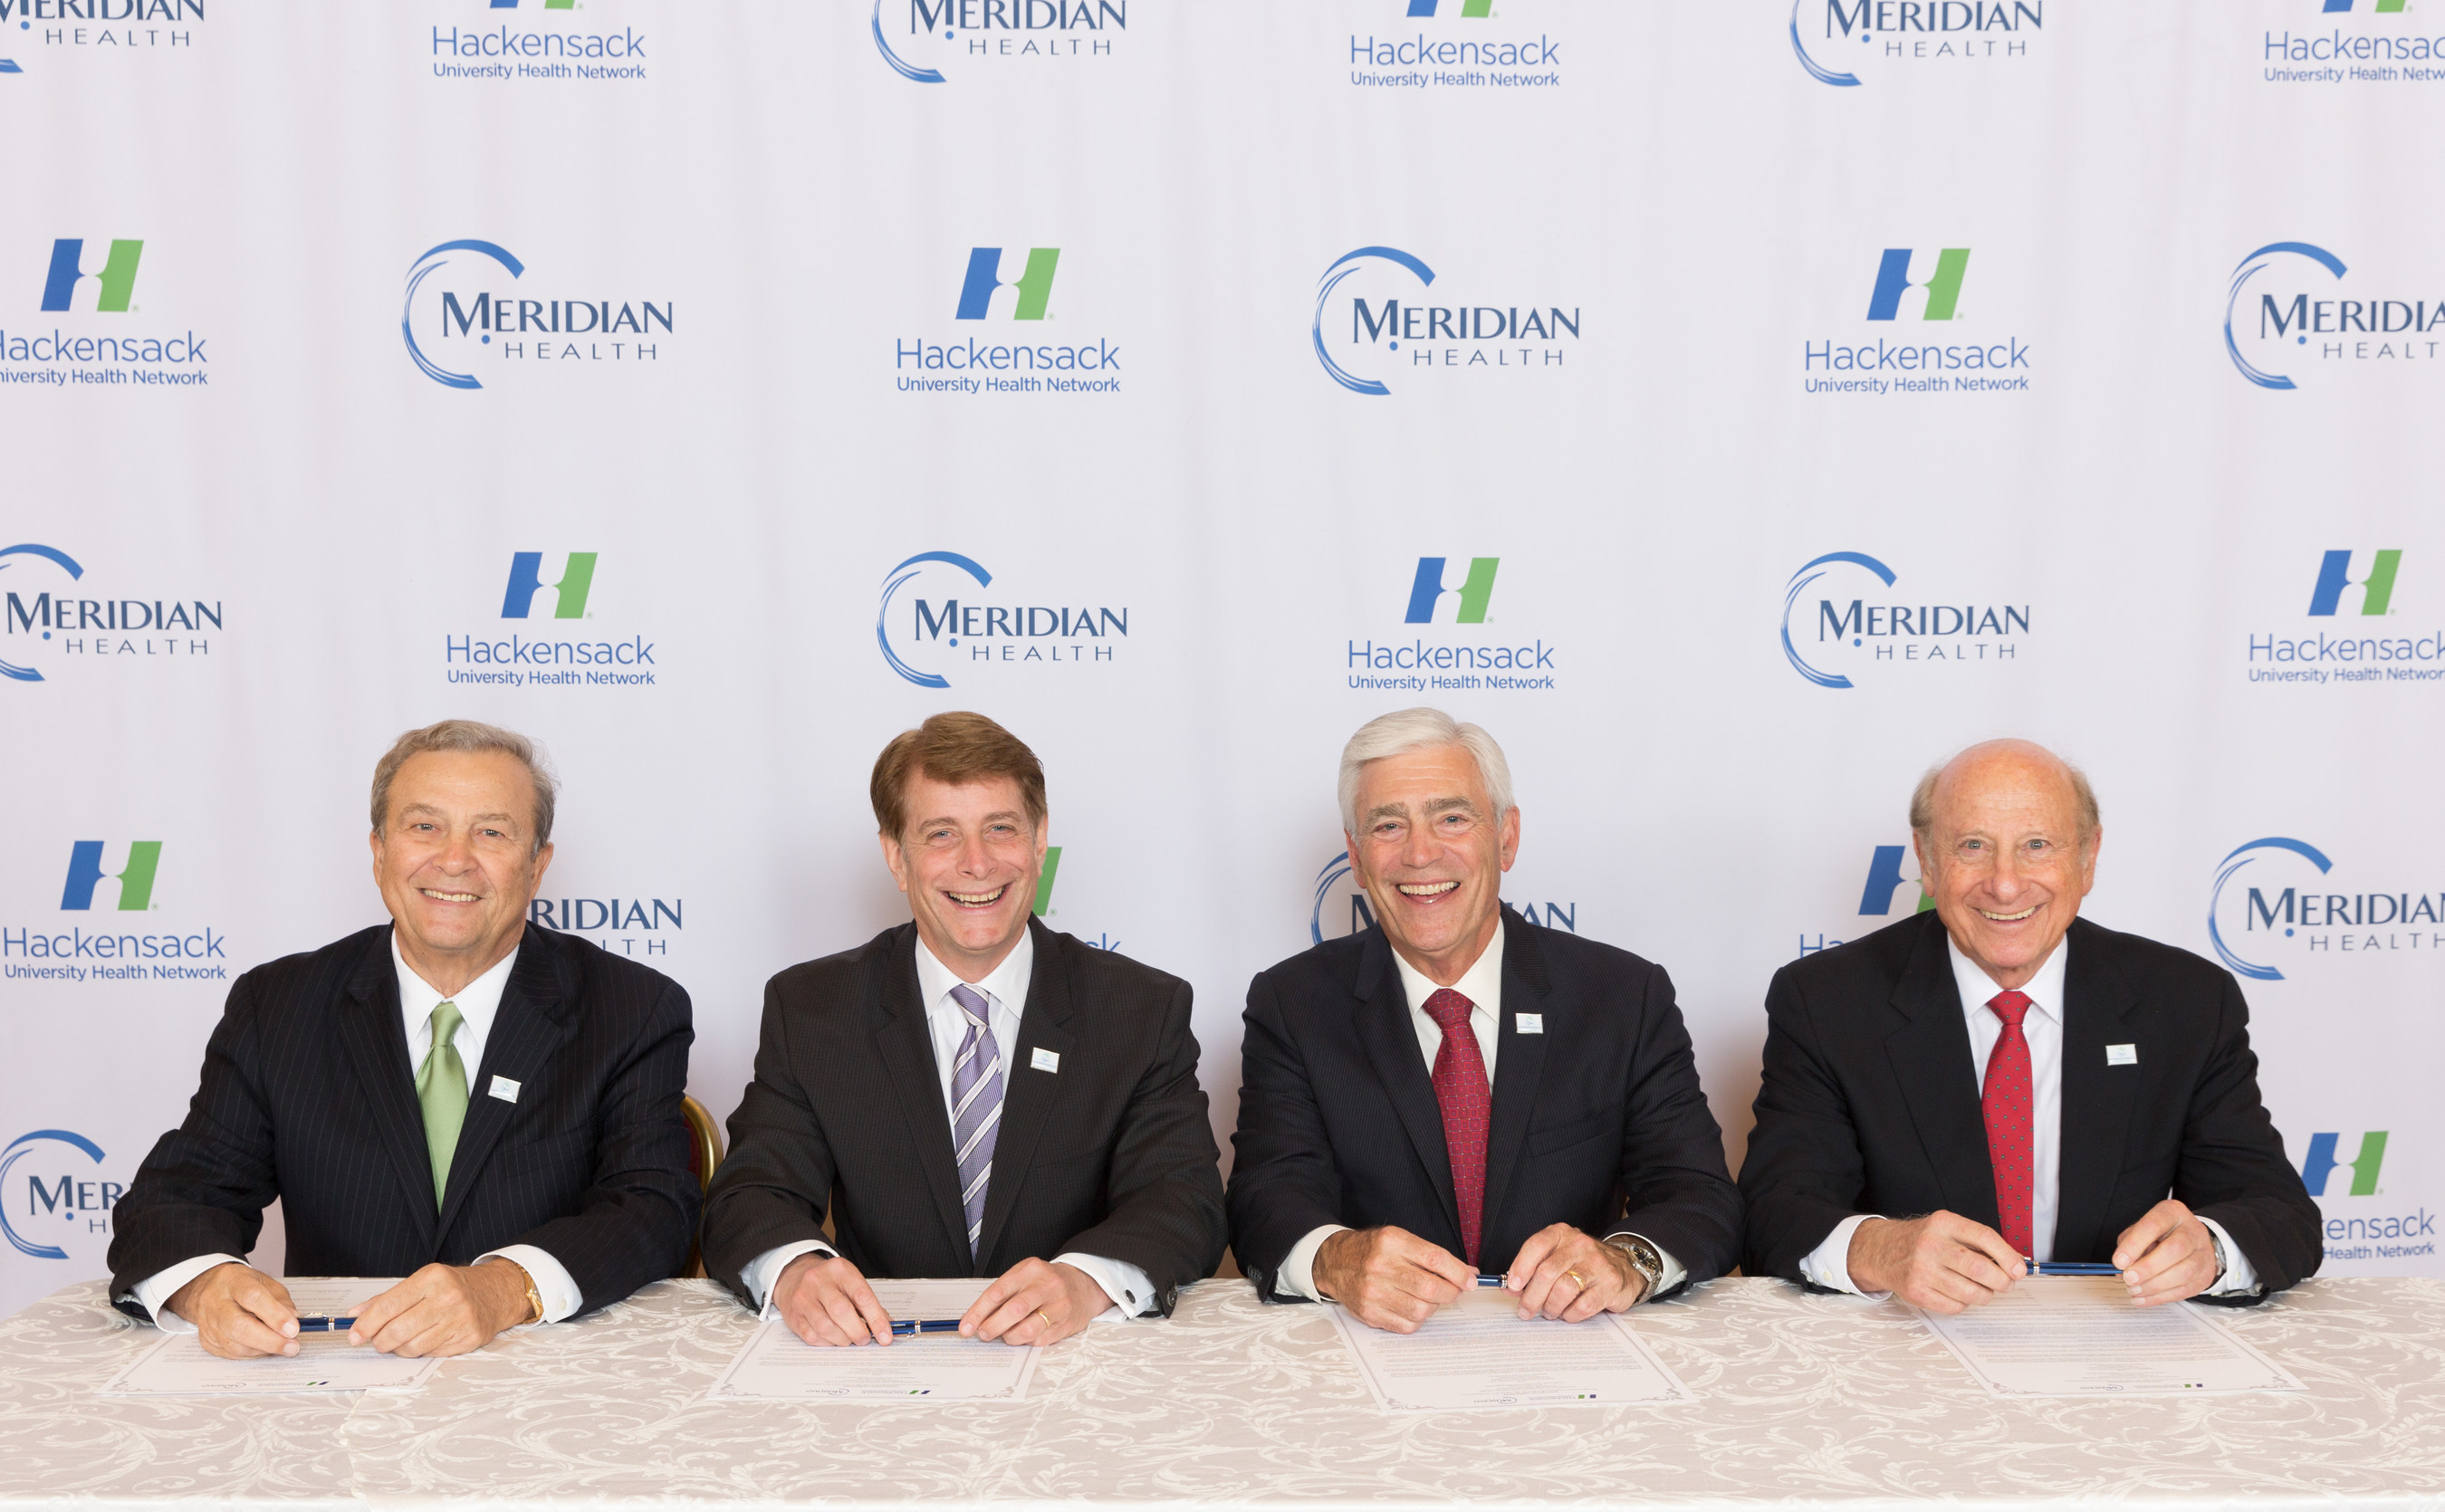 From L to R - Joseph Simunovich, chairman of Hackensack University Health Network Board of Trustees, Robert C. Garrett, FACHE, president and CEO of Hackensack University Health Network, John K. Lloyd, FACHE, president and CEO of Meridian Health, and Gordon Litwin, Esq., chairman of Meridian Health Board or Trustees